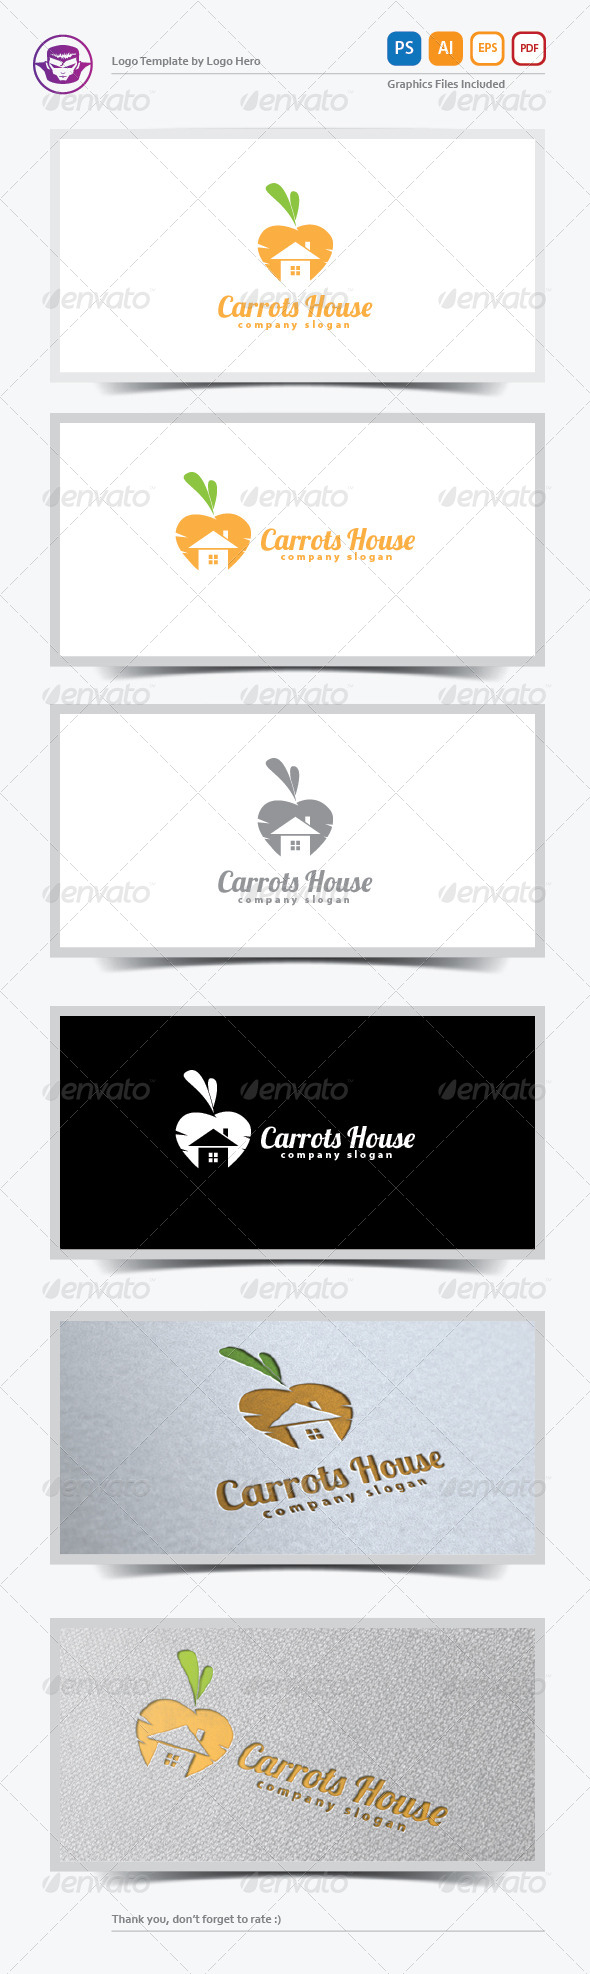 GraphicRiver Carrots House Logo Template 5921236